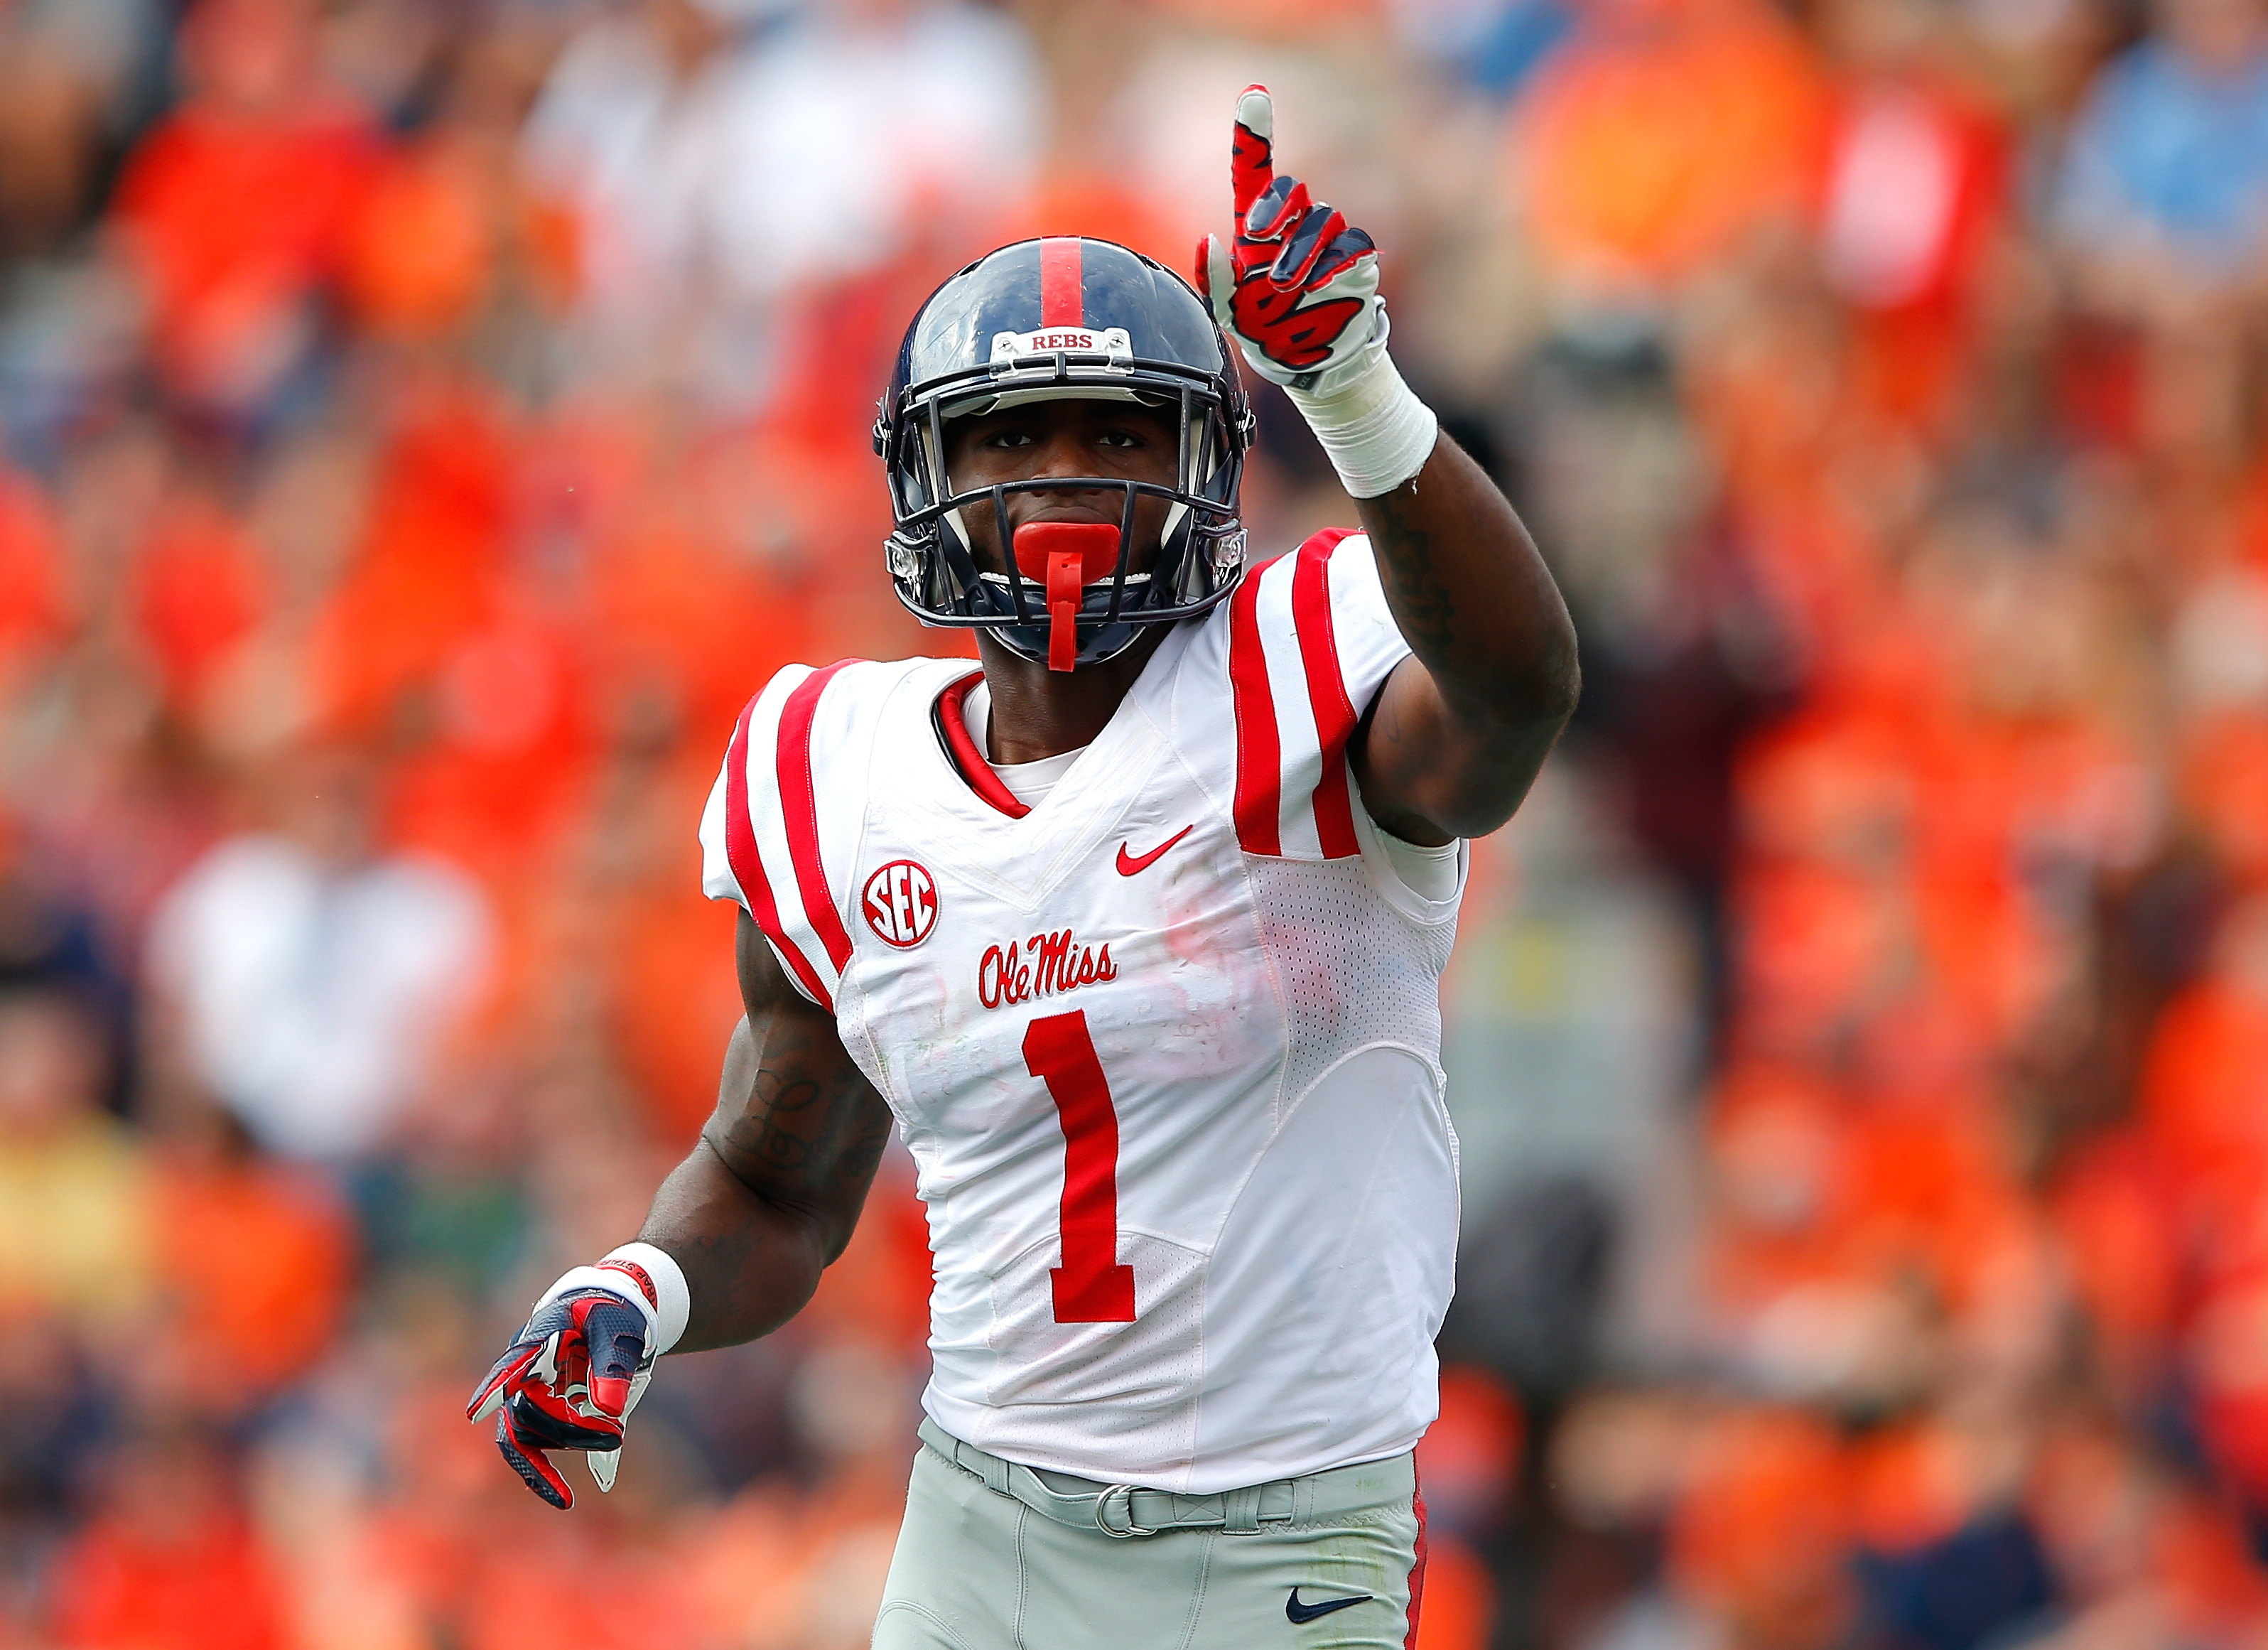 2016 NFL Draft wide receiver rankings: A solid group headlined by Laquon Treadwell